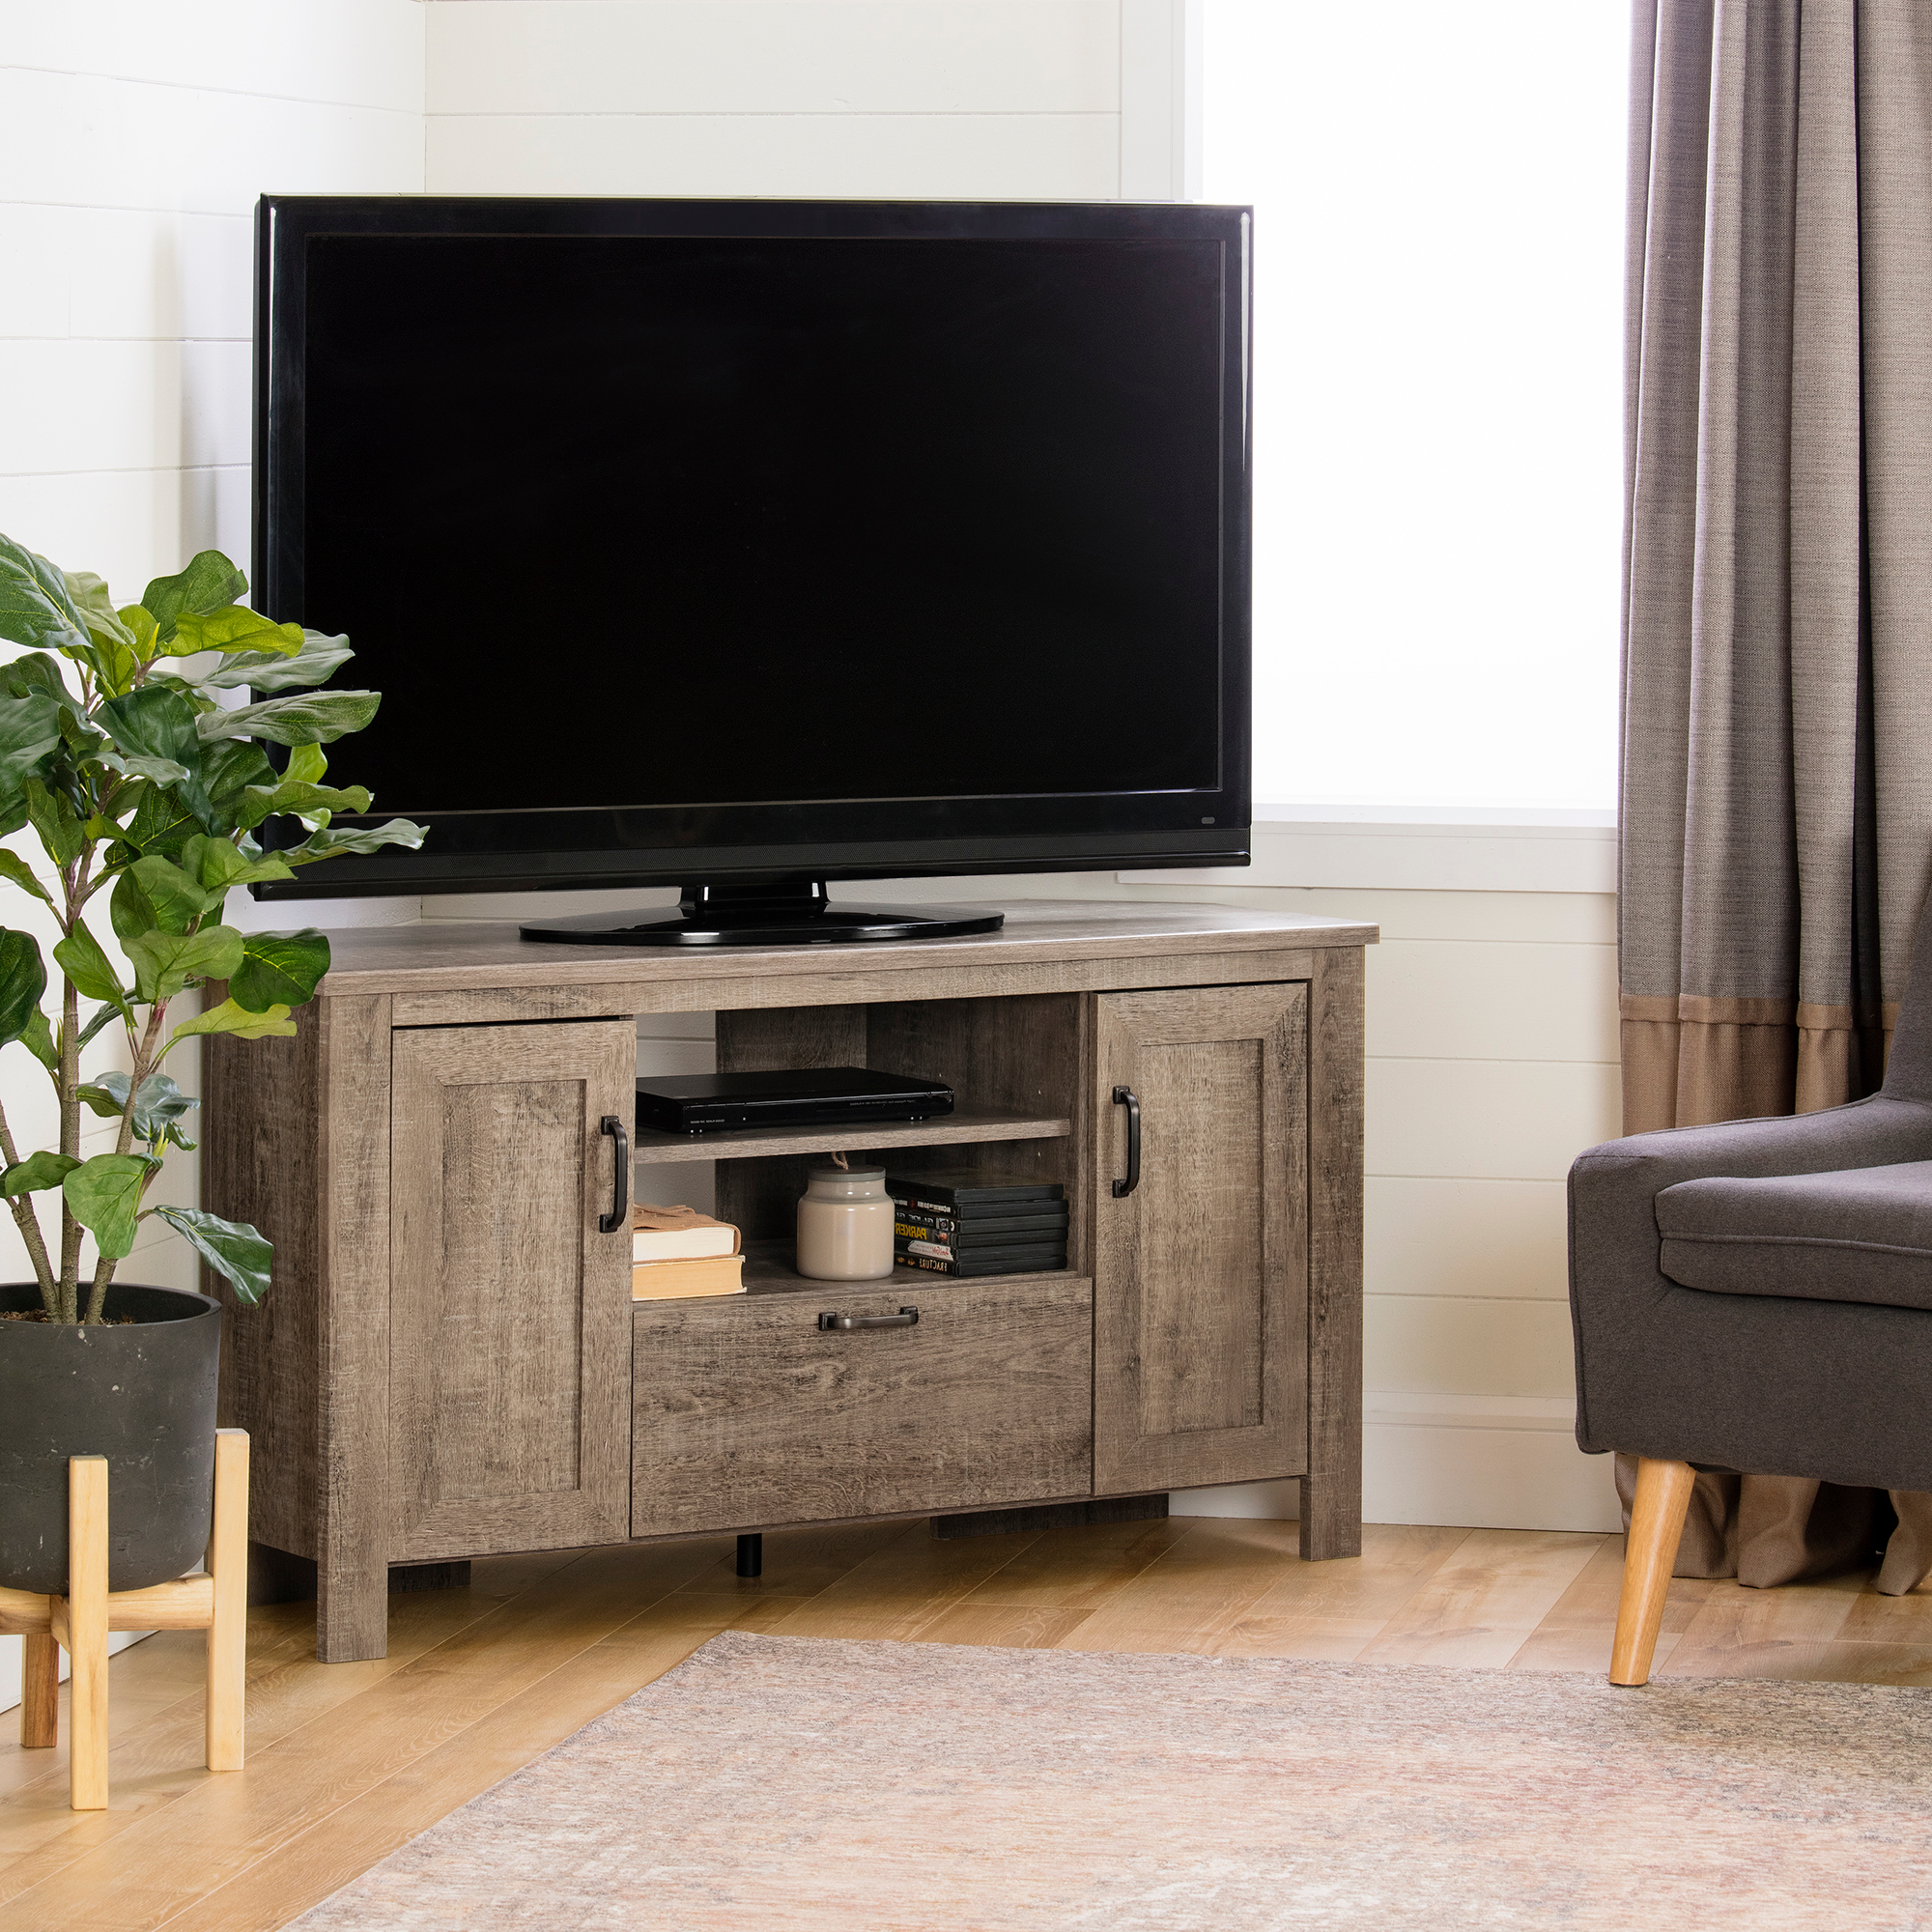 Tv Stands With Led Lights In Multiple Finishes Throughout Recent South Shore Lionel Corner Tv Stand, Multiple Finishes (View 5 of 10)